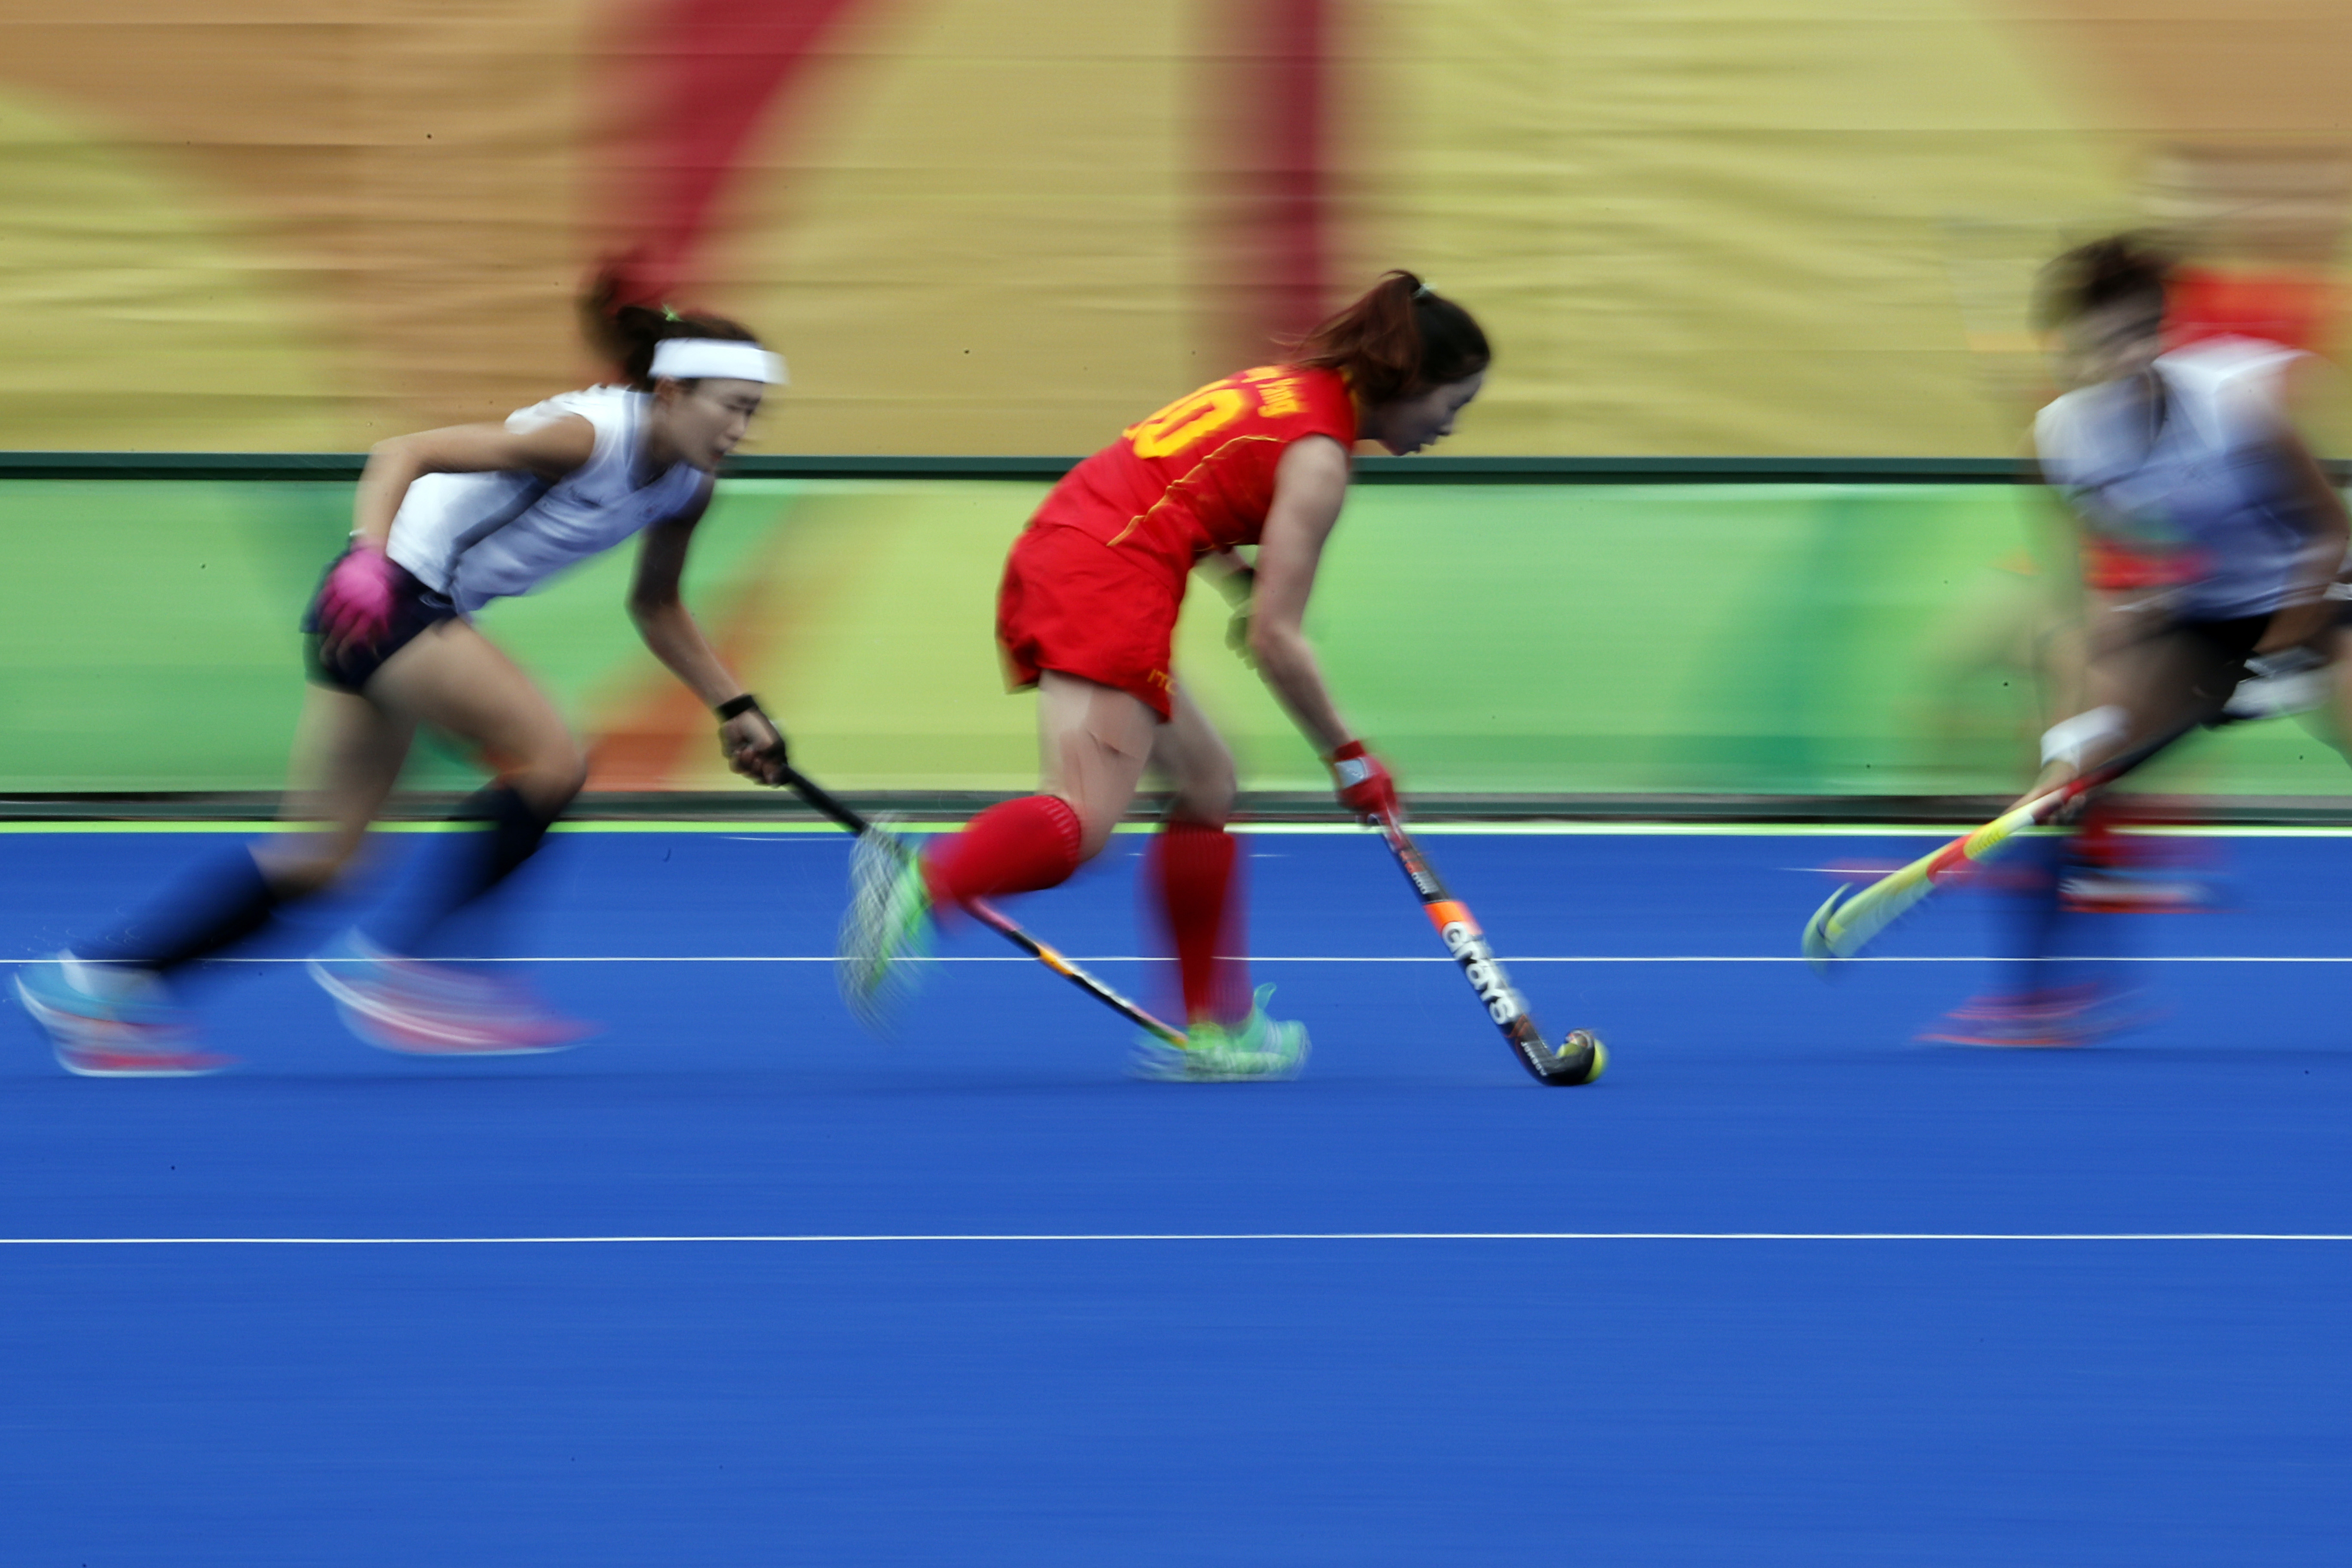 China's Yang Peng, center, tries to run past South Korea's defense during a women's field hockey match at the 2016 Summer Olympics in Rio de Janeiro, Brazil, Friday, Aug. 12, 2016. (AP Photo/Dario Lopez-Mills)